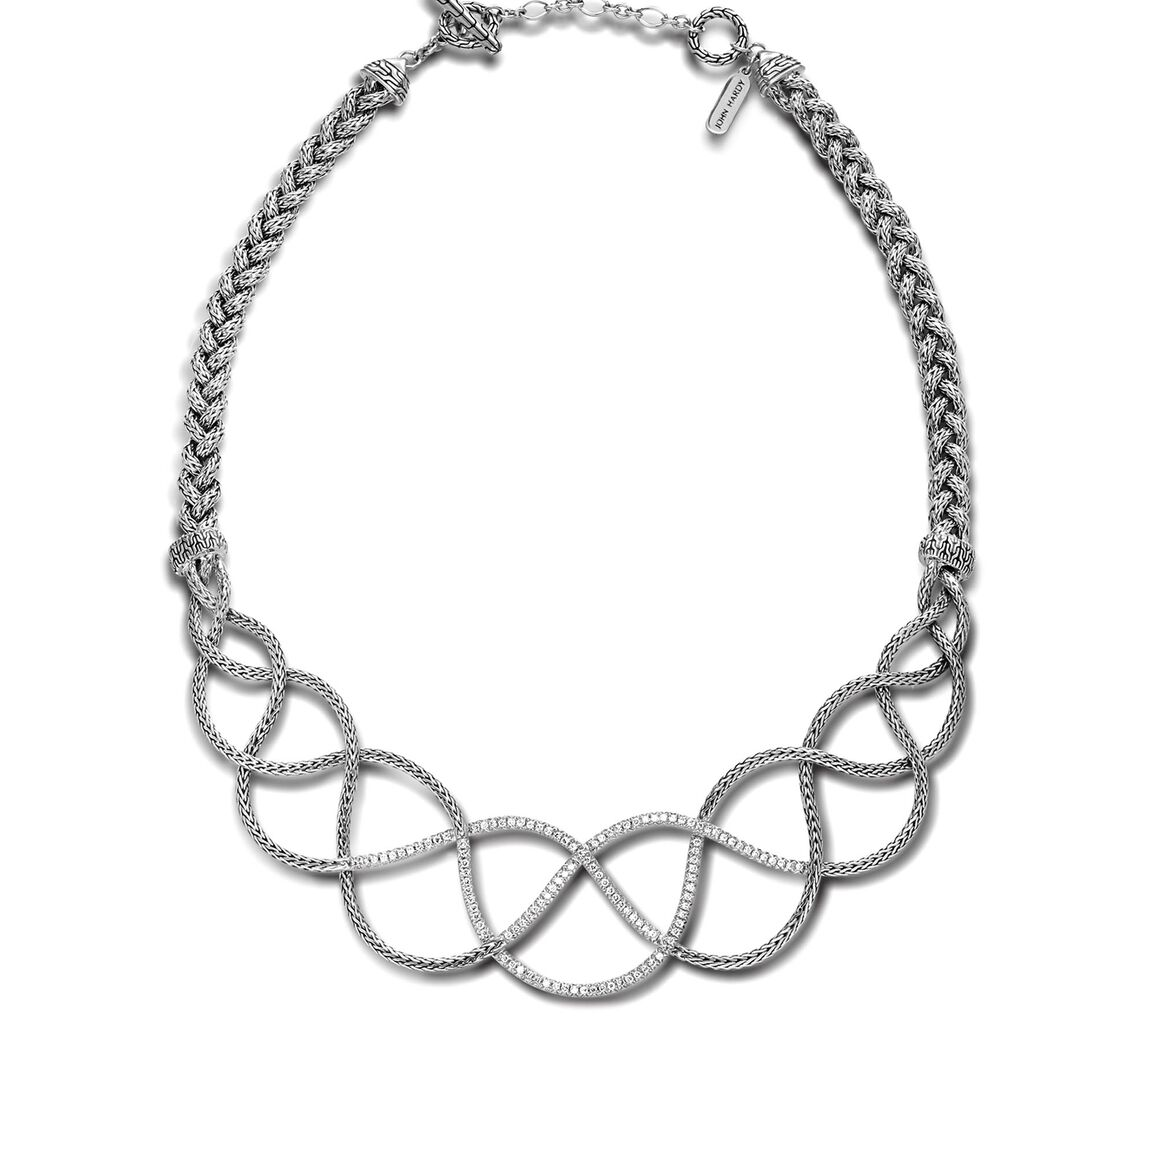 Woven Braided Necklace with Diamonds